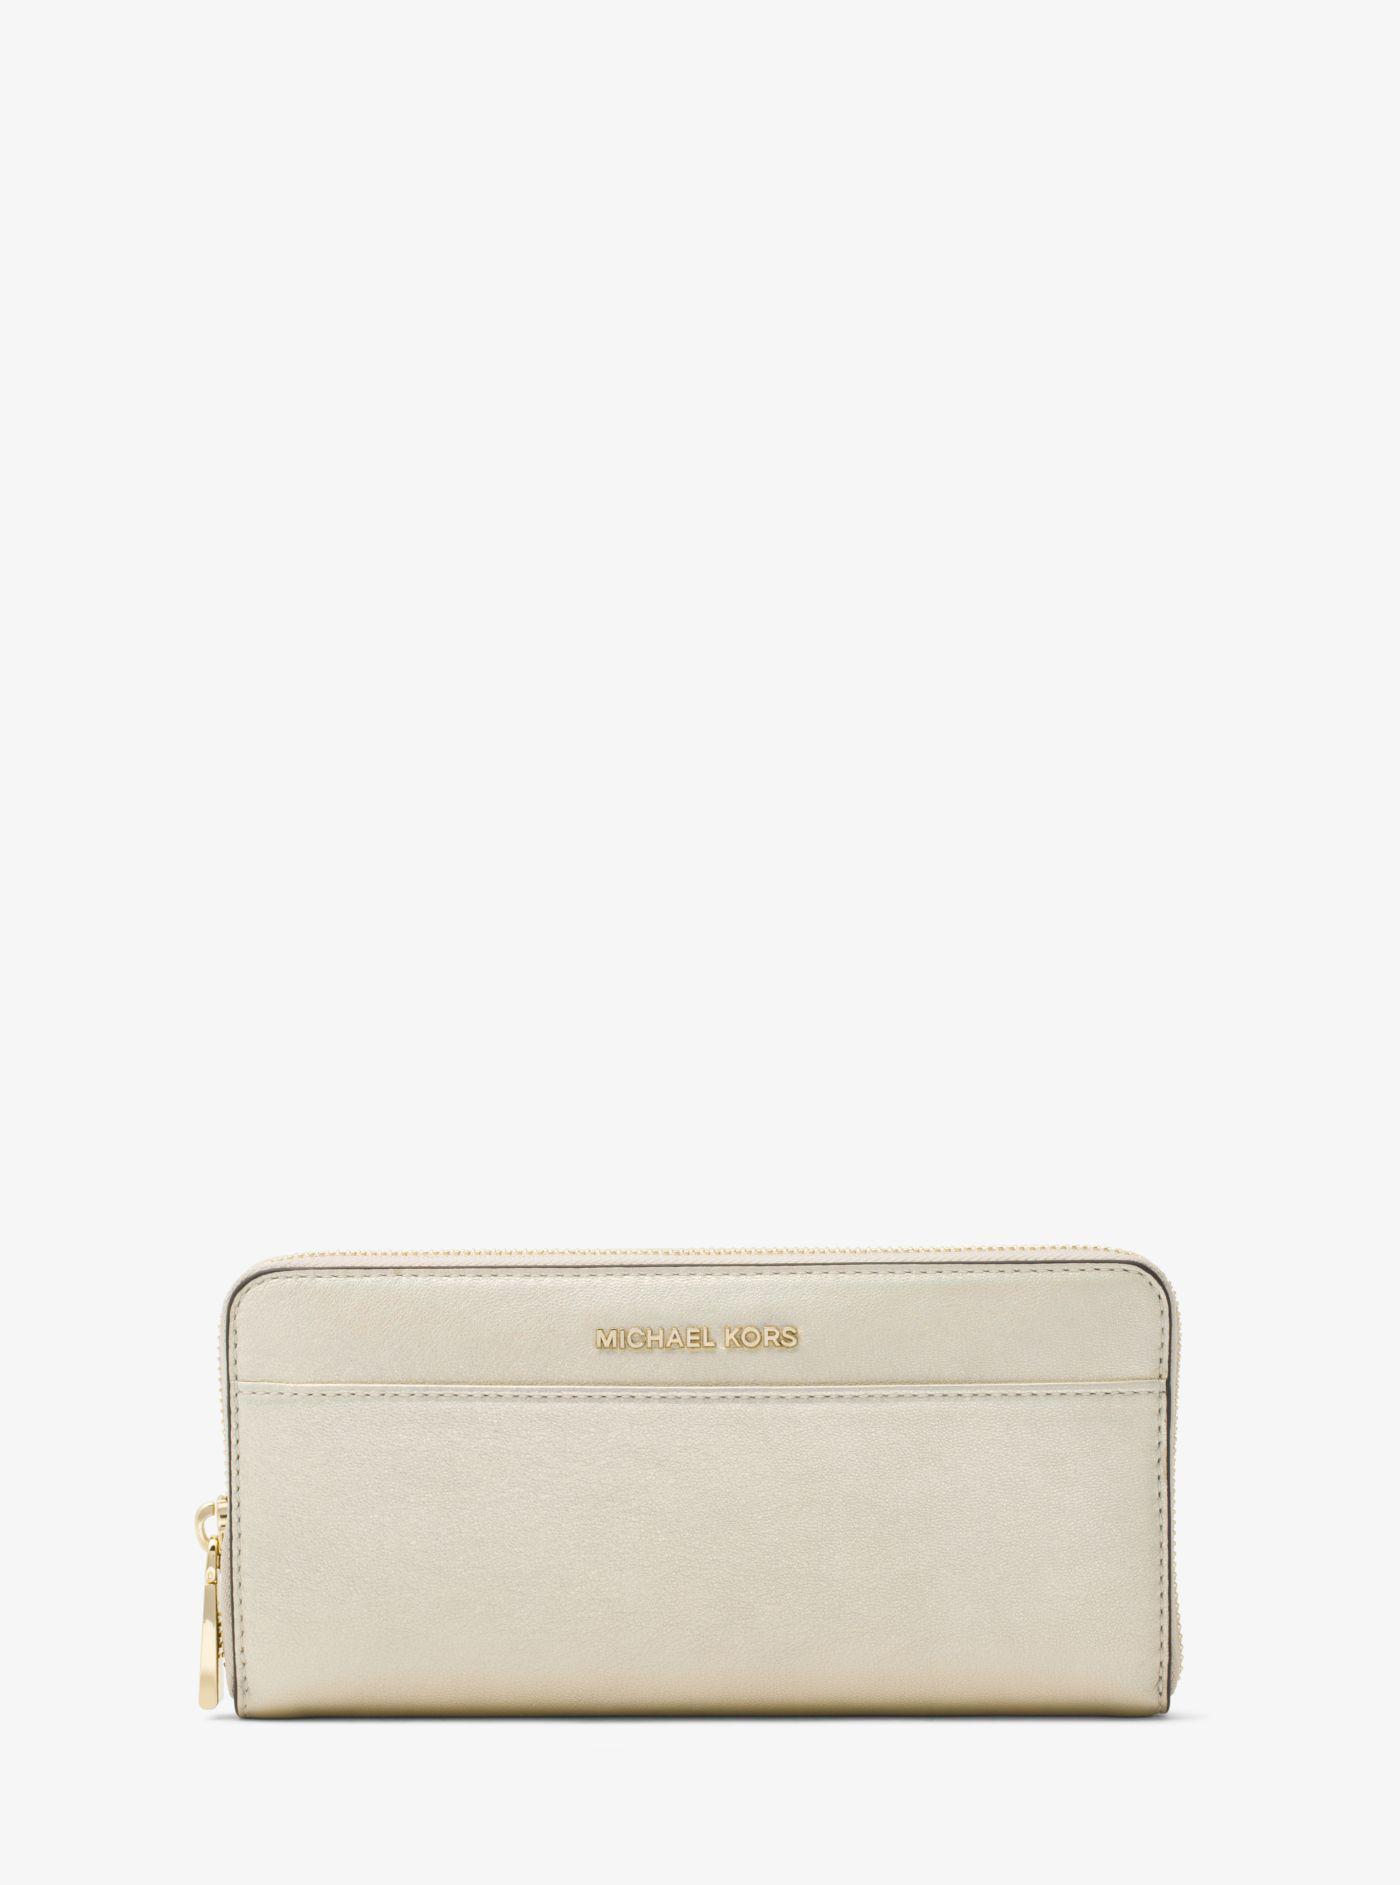 c2b762342bcf Lyst - Michael Kors Jet Set Iridescent Leather Continental Wallet in ...